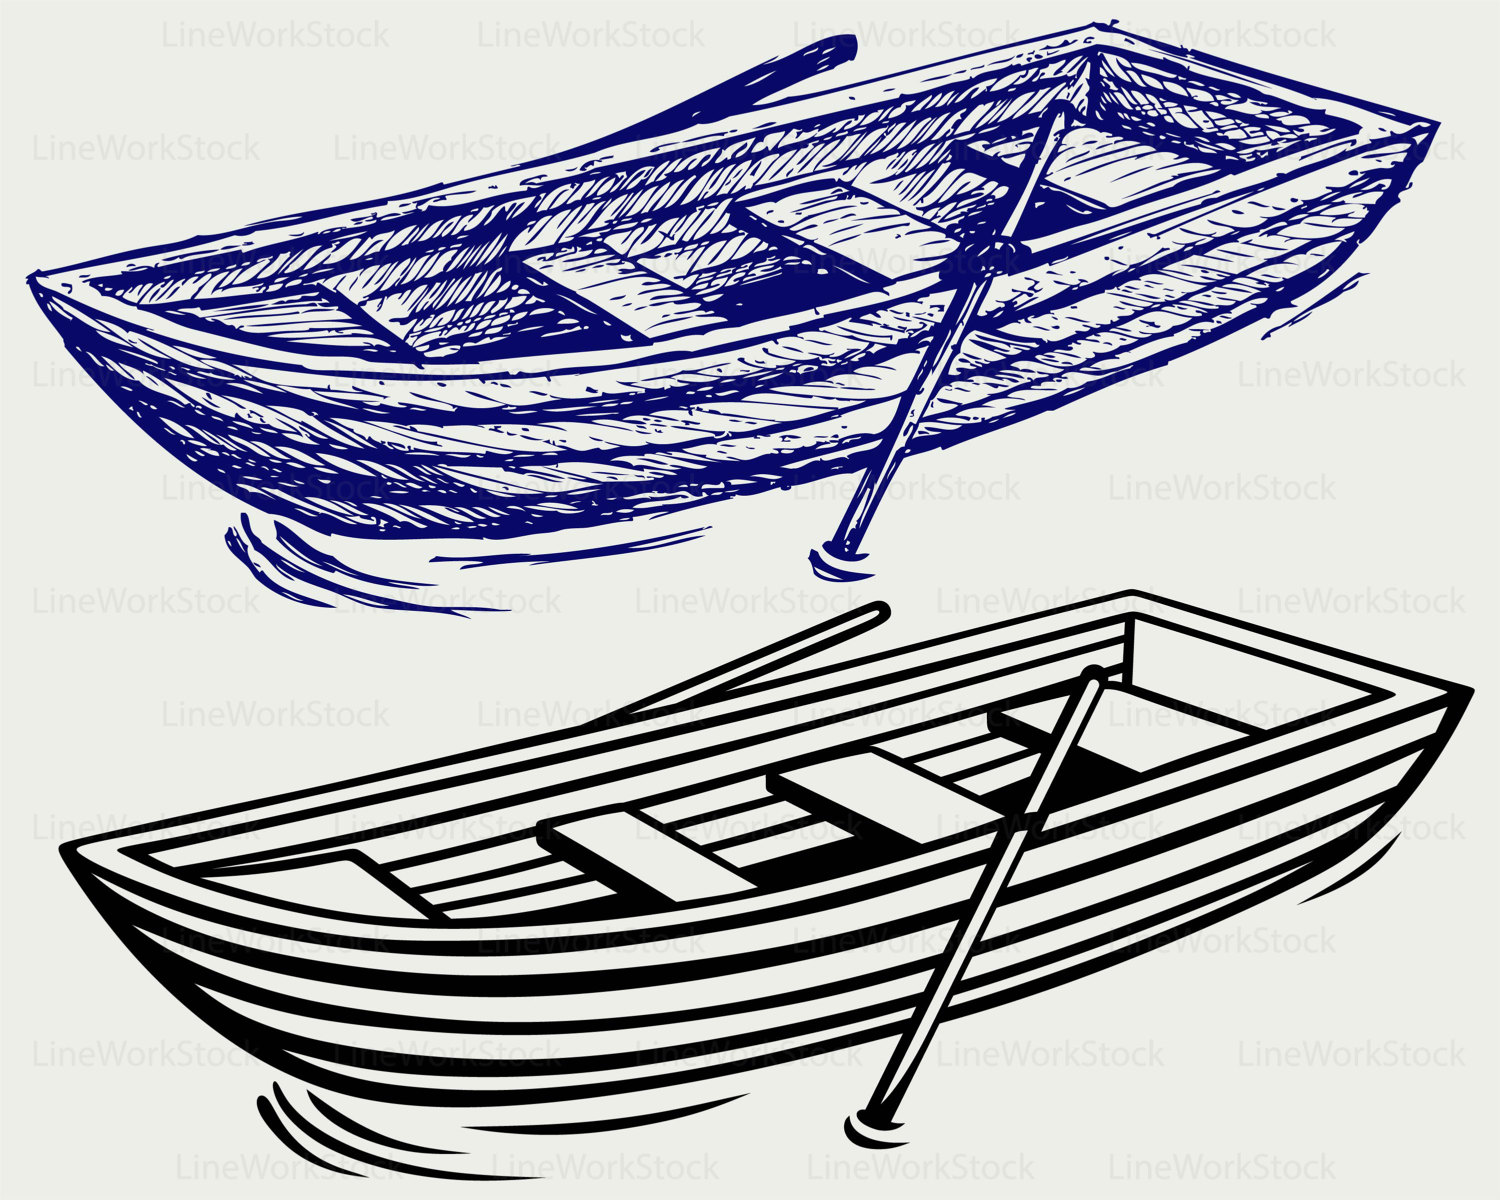 Boat svg #14, Download drawings